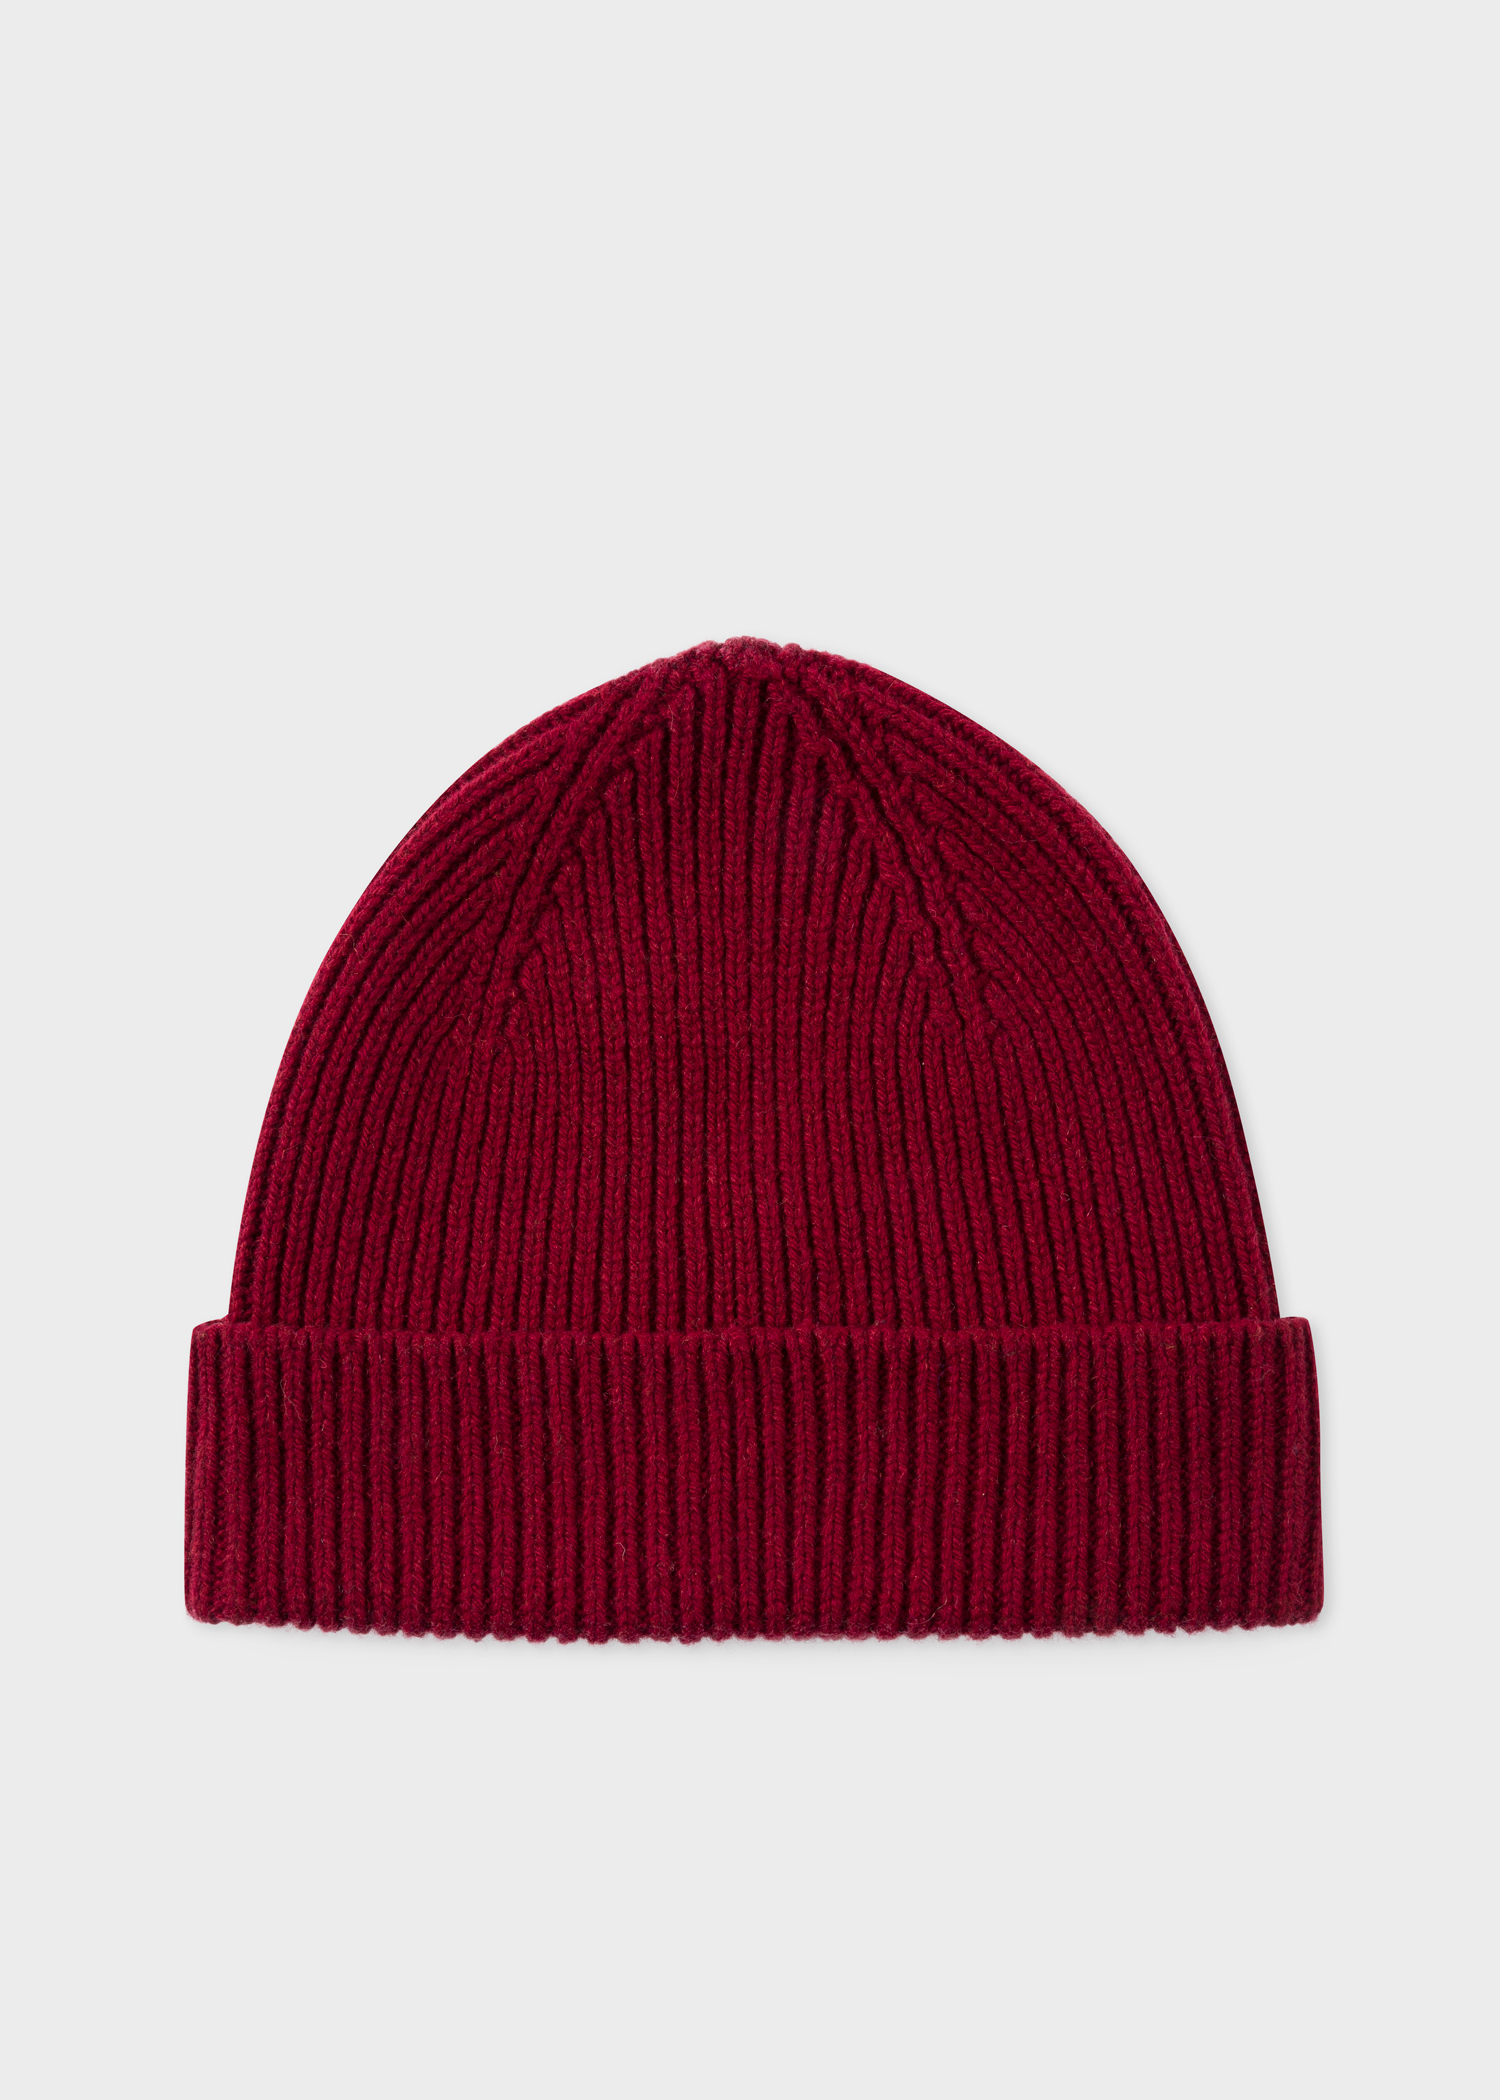 Men s Burgundy Cashmere-Blend Beanie Hat - Paul Smith US 59f2adf4dfd